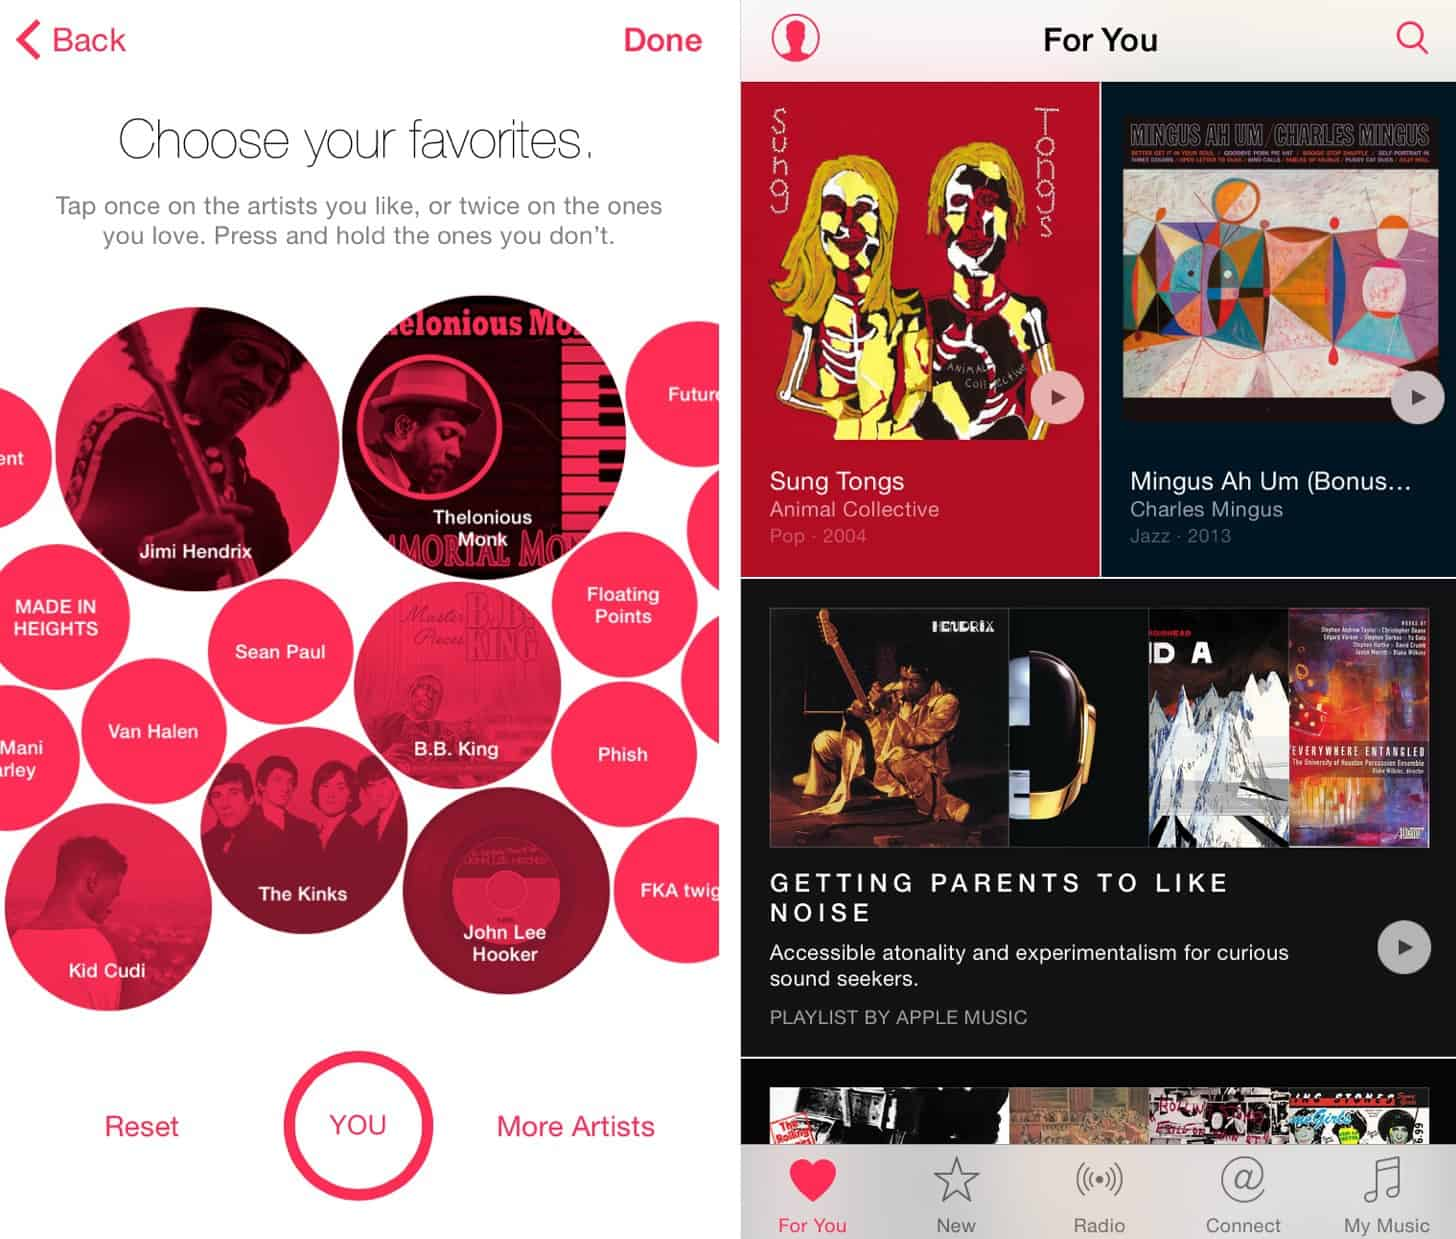 How To: Refine Apple Music and get better 'For You' recommendations